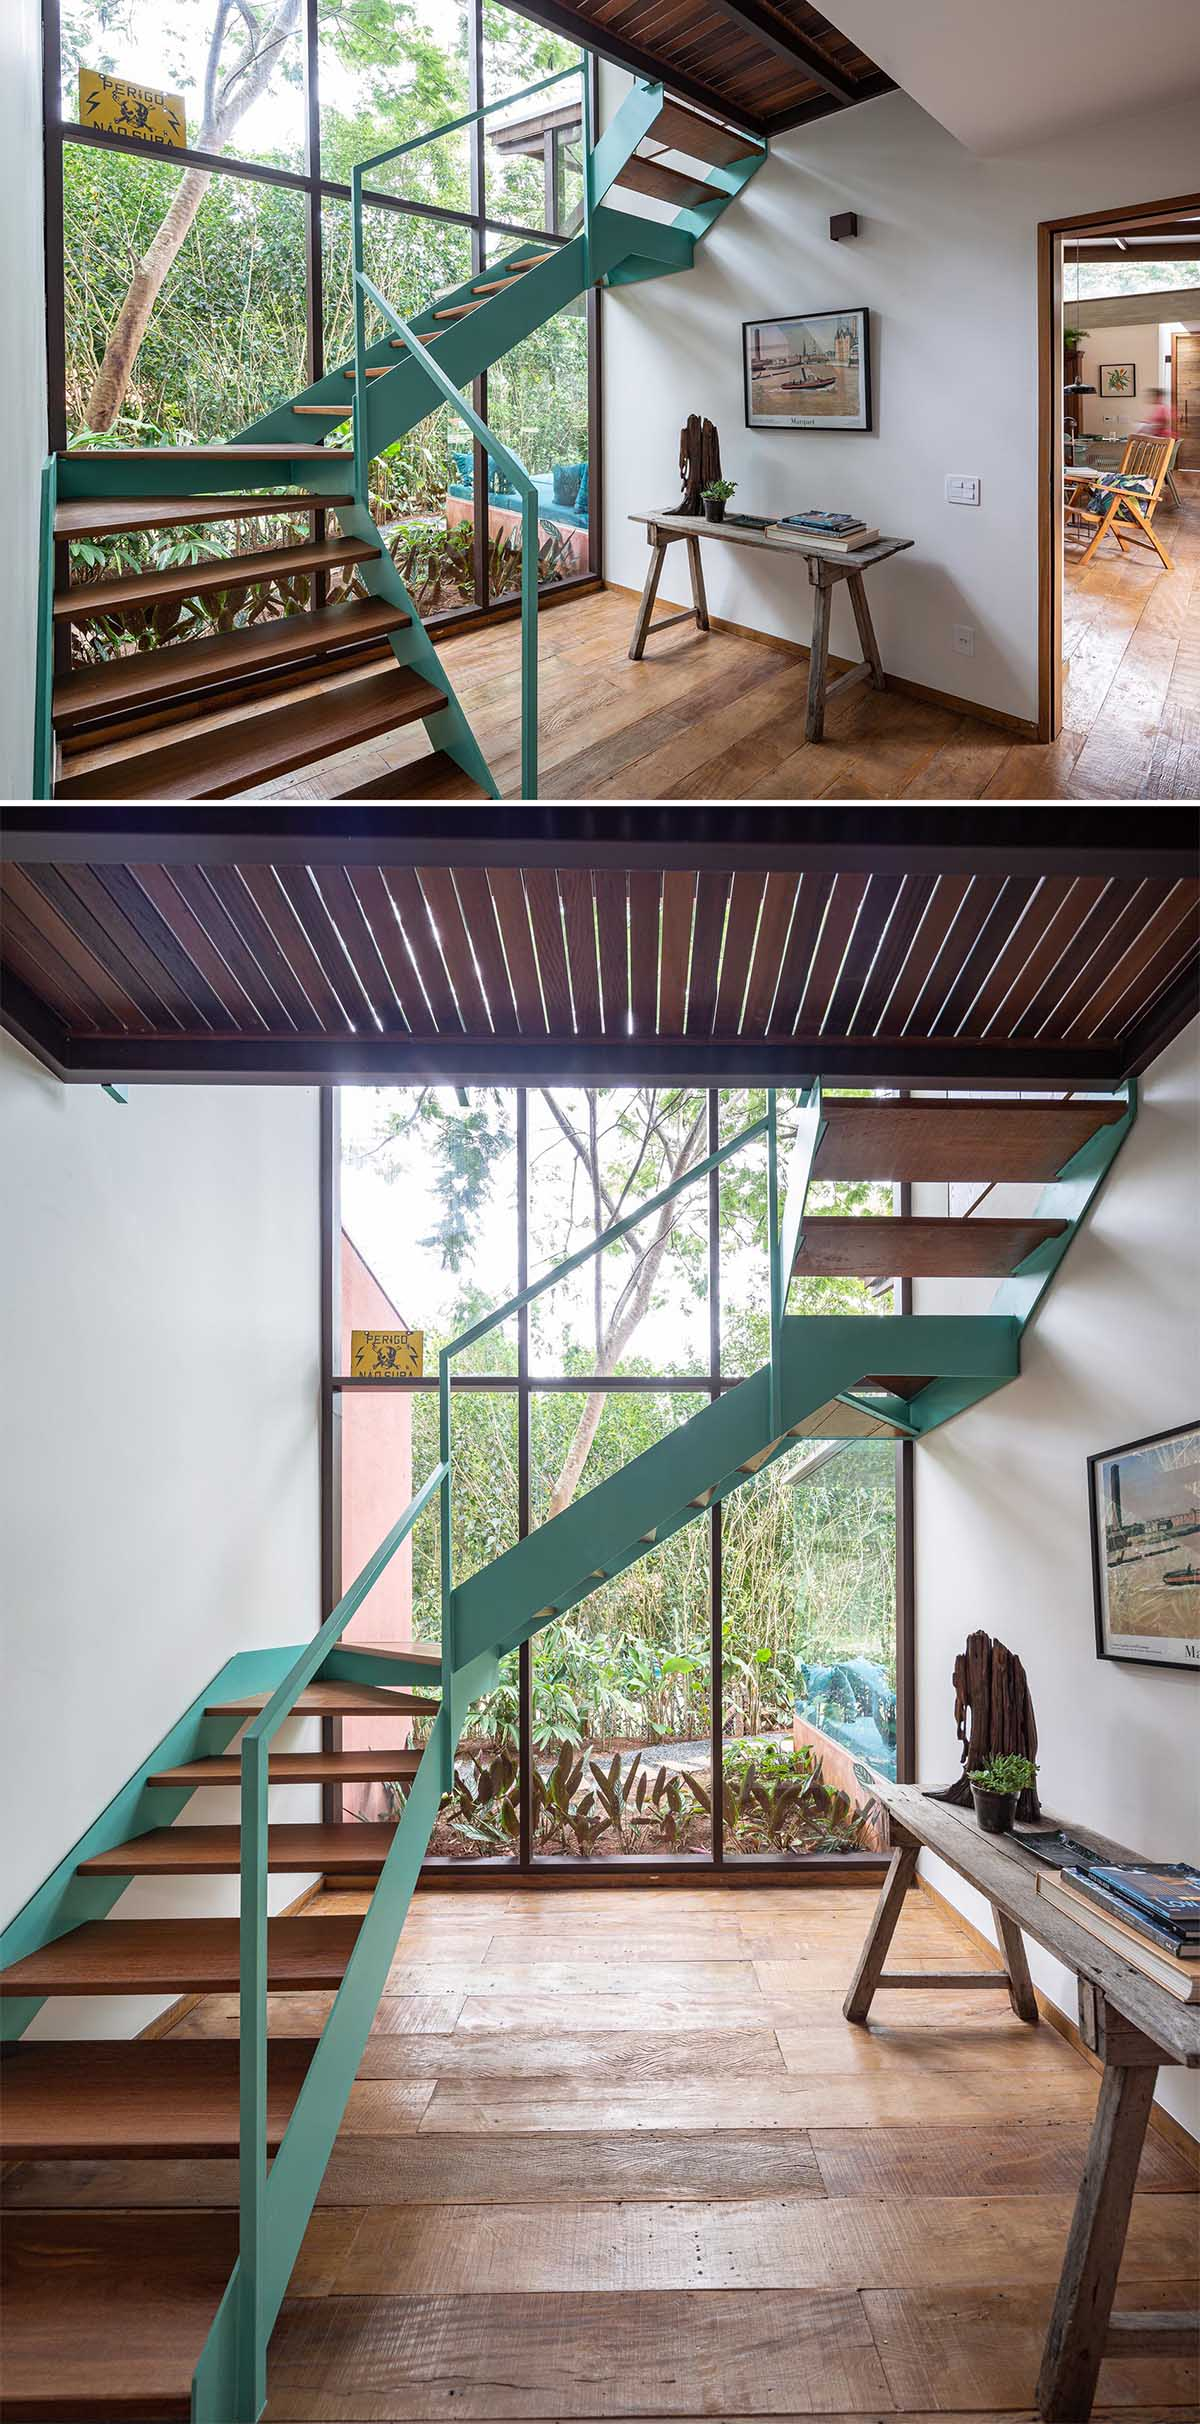 A staircase with a light turquoise blue frame and wood treads connects the two levels of the home.